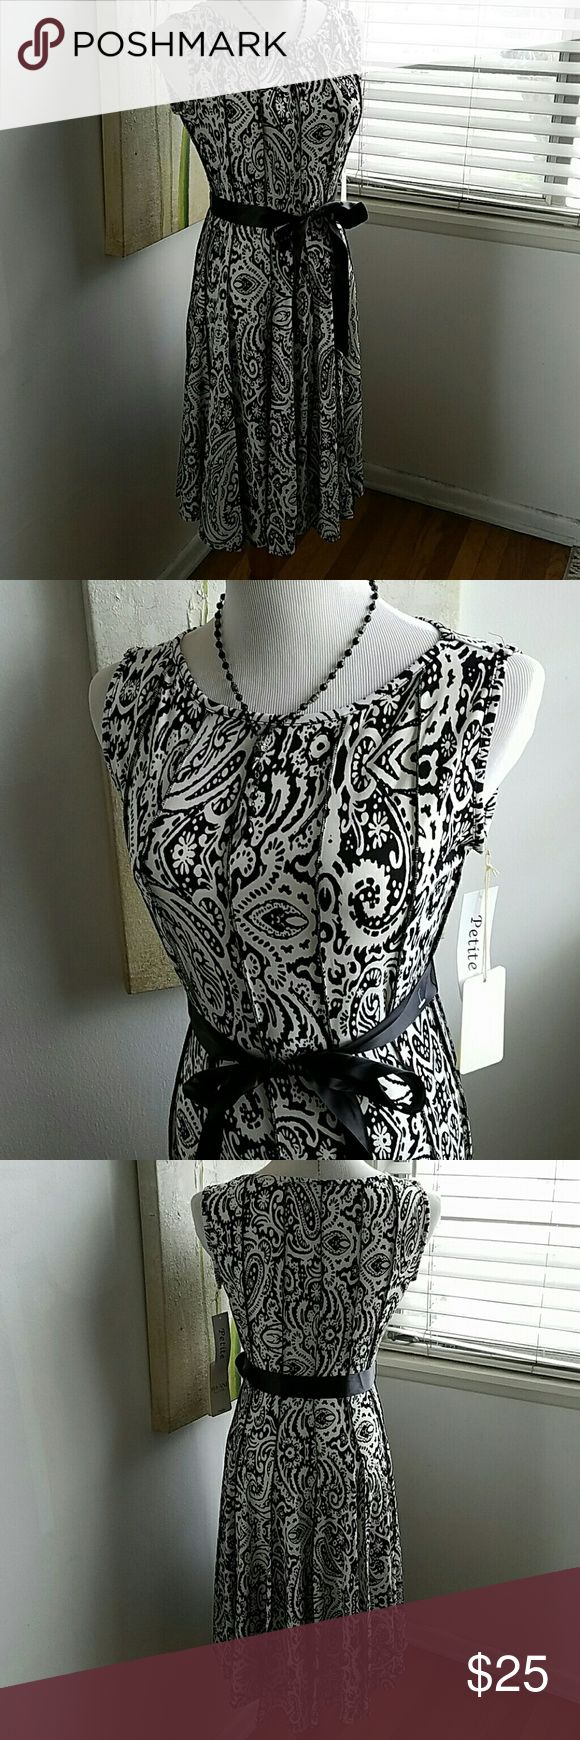 Black and white dress petites medium Black and white fitted dress with a ribbon belt detail stitching Haani New York  Dresses